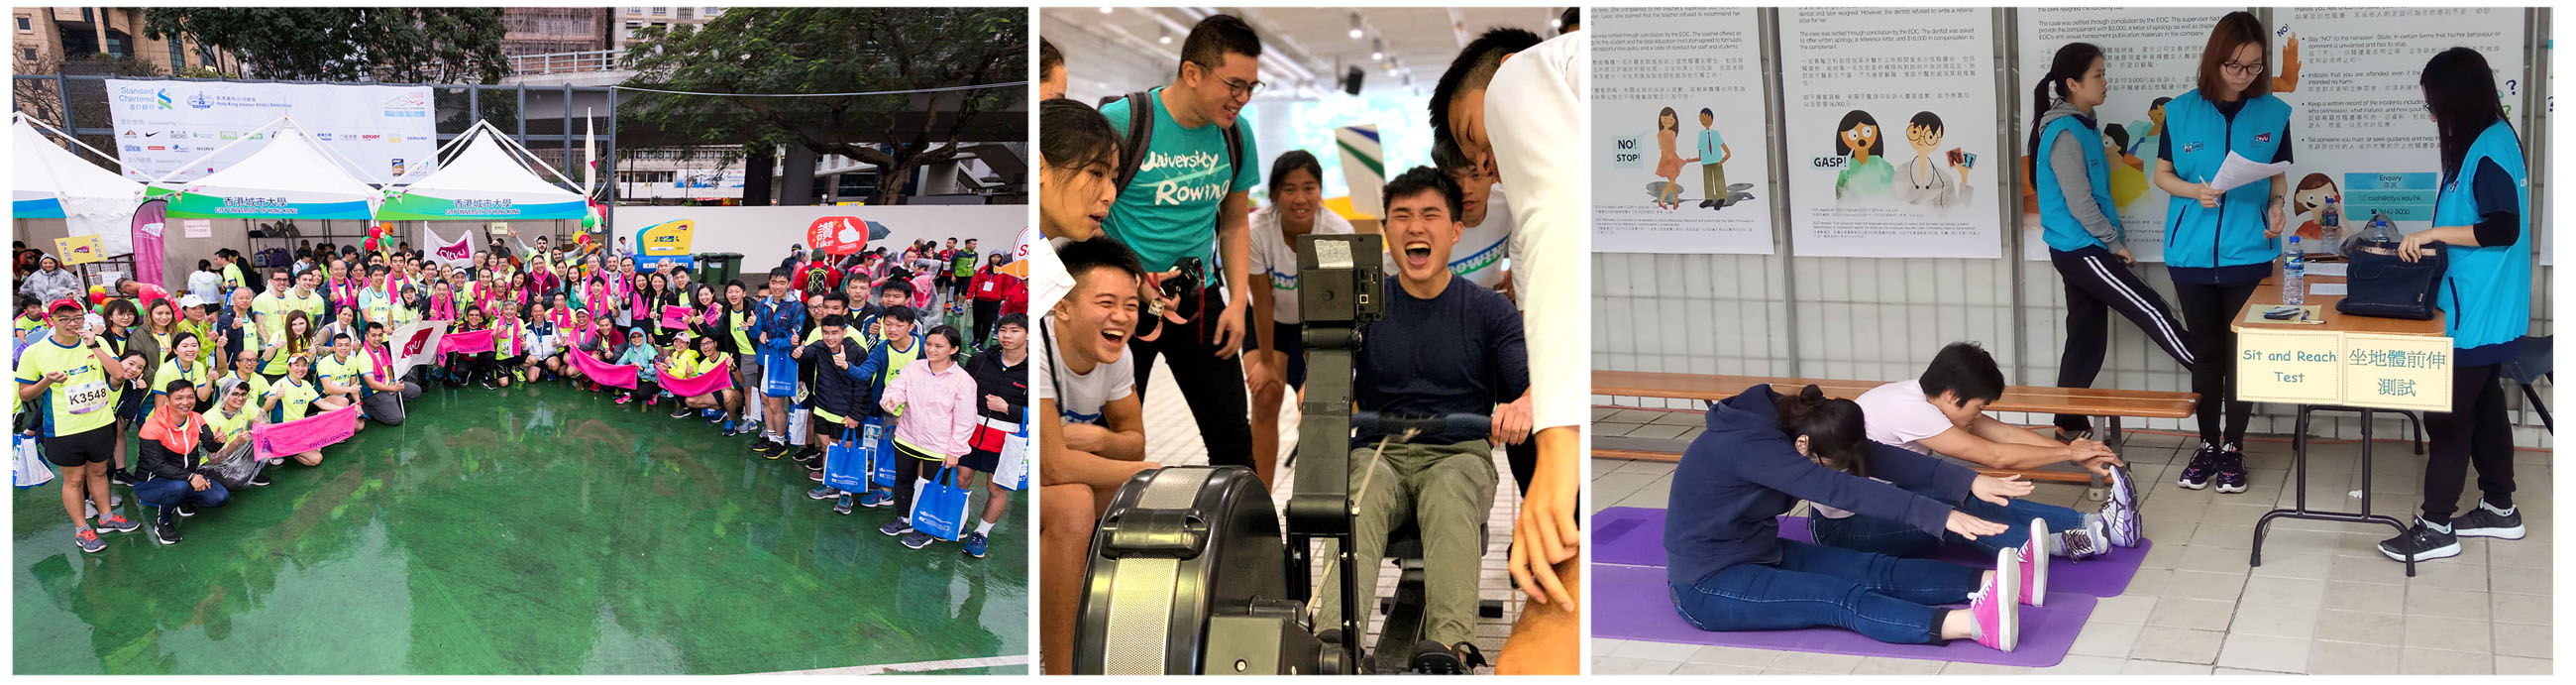 "Activities for the ""CityU Wellness for All"" campaign: (from left) CityU delegates participating in SCHK Marathon; Rowling Touch; health and fitness assessment."